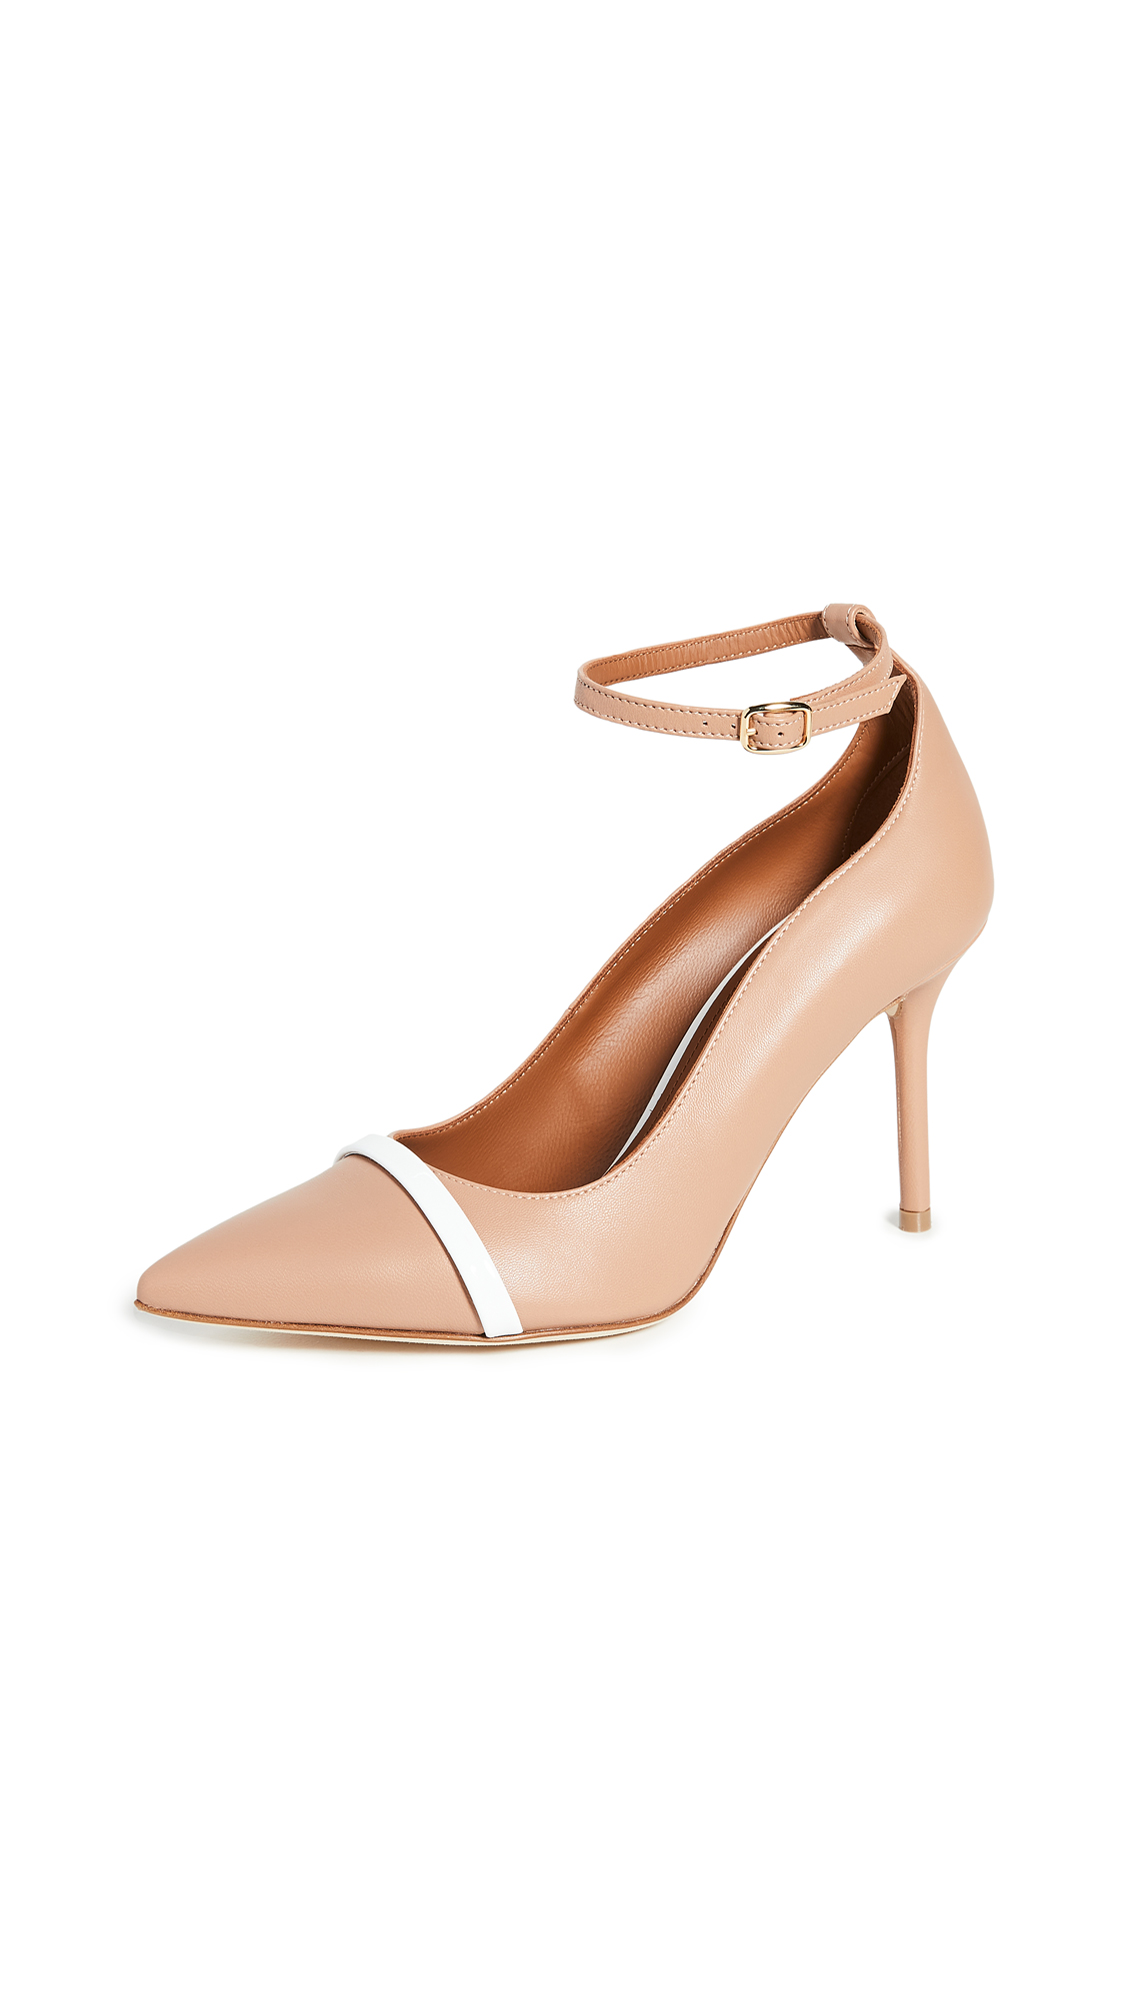 Buy Malone Souliers online - photo of Malone Souliers 85mm Molly Pumps